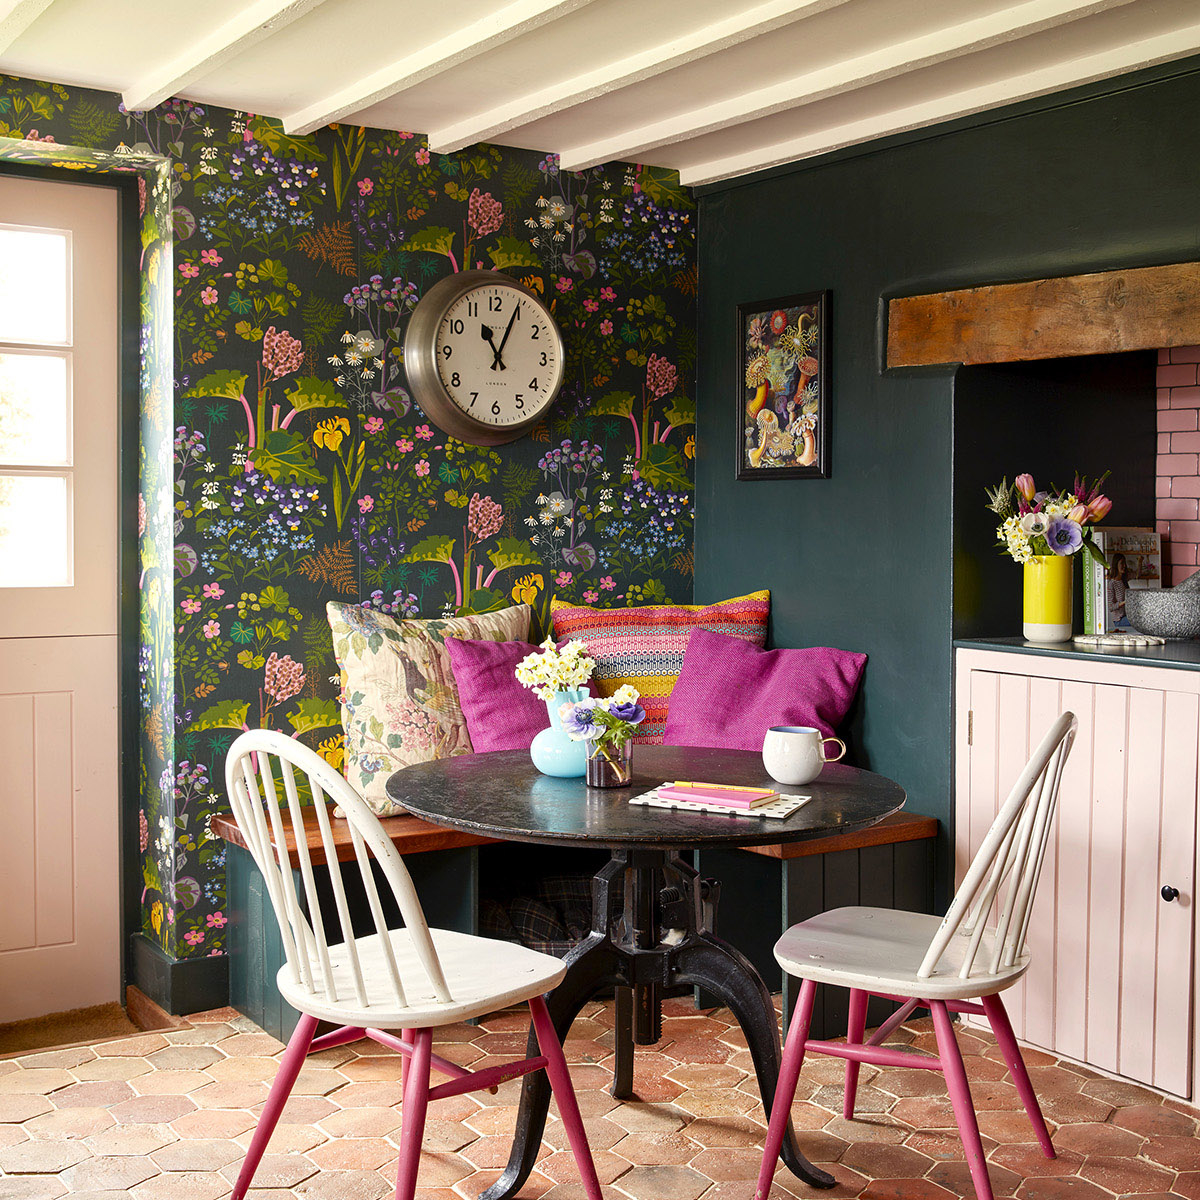 Sophie Robinson's kitchen seating corner. white dining chairs with pink legs, colourful patterned cushions and colourful botanical wallpaper